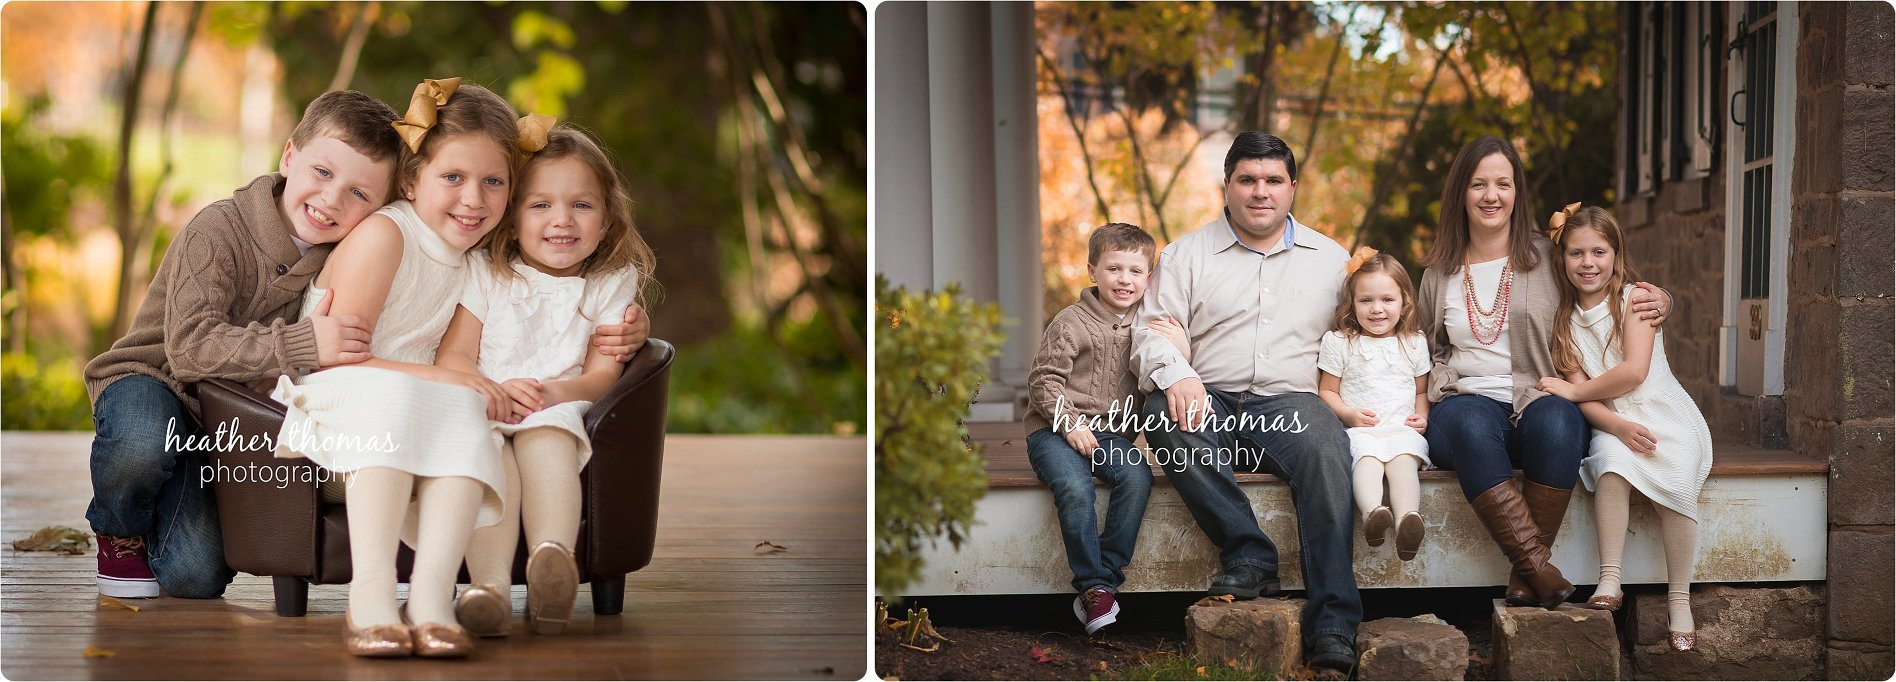 a portrait of a family outside with heather thomas photography